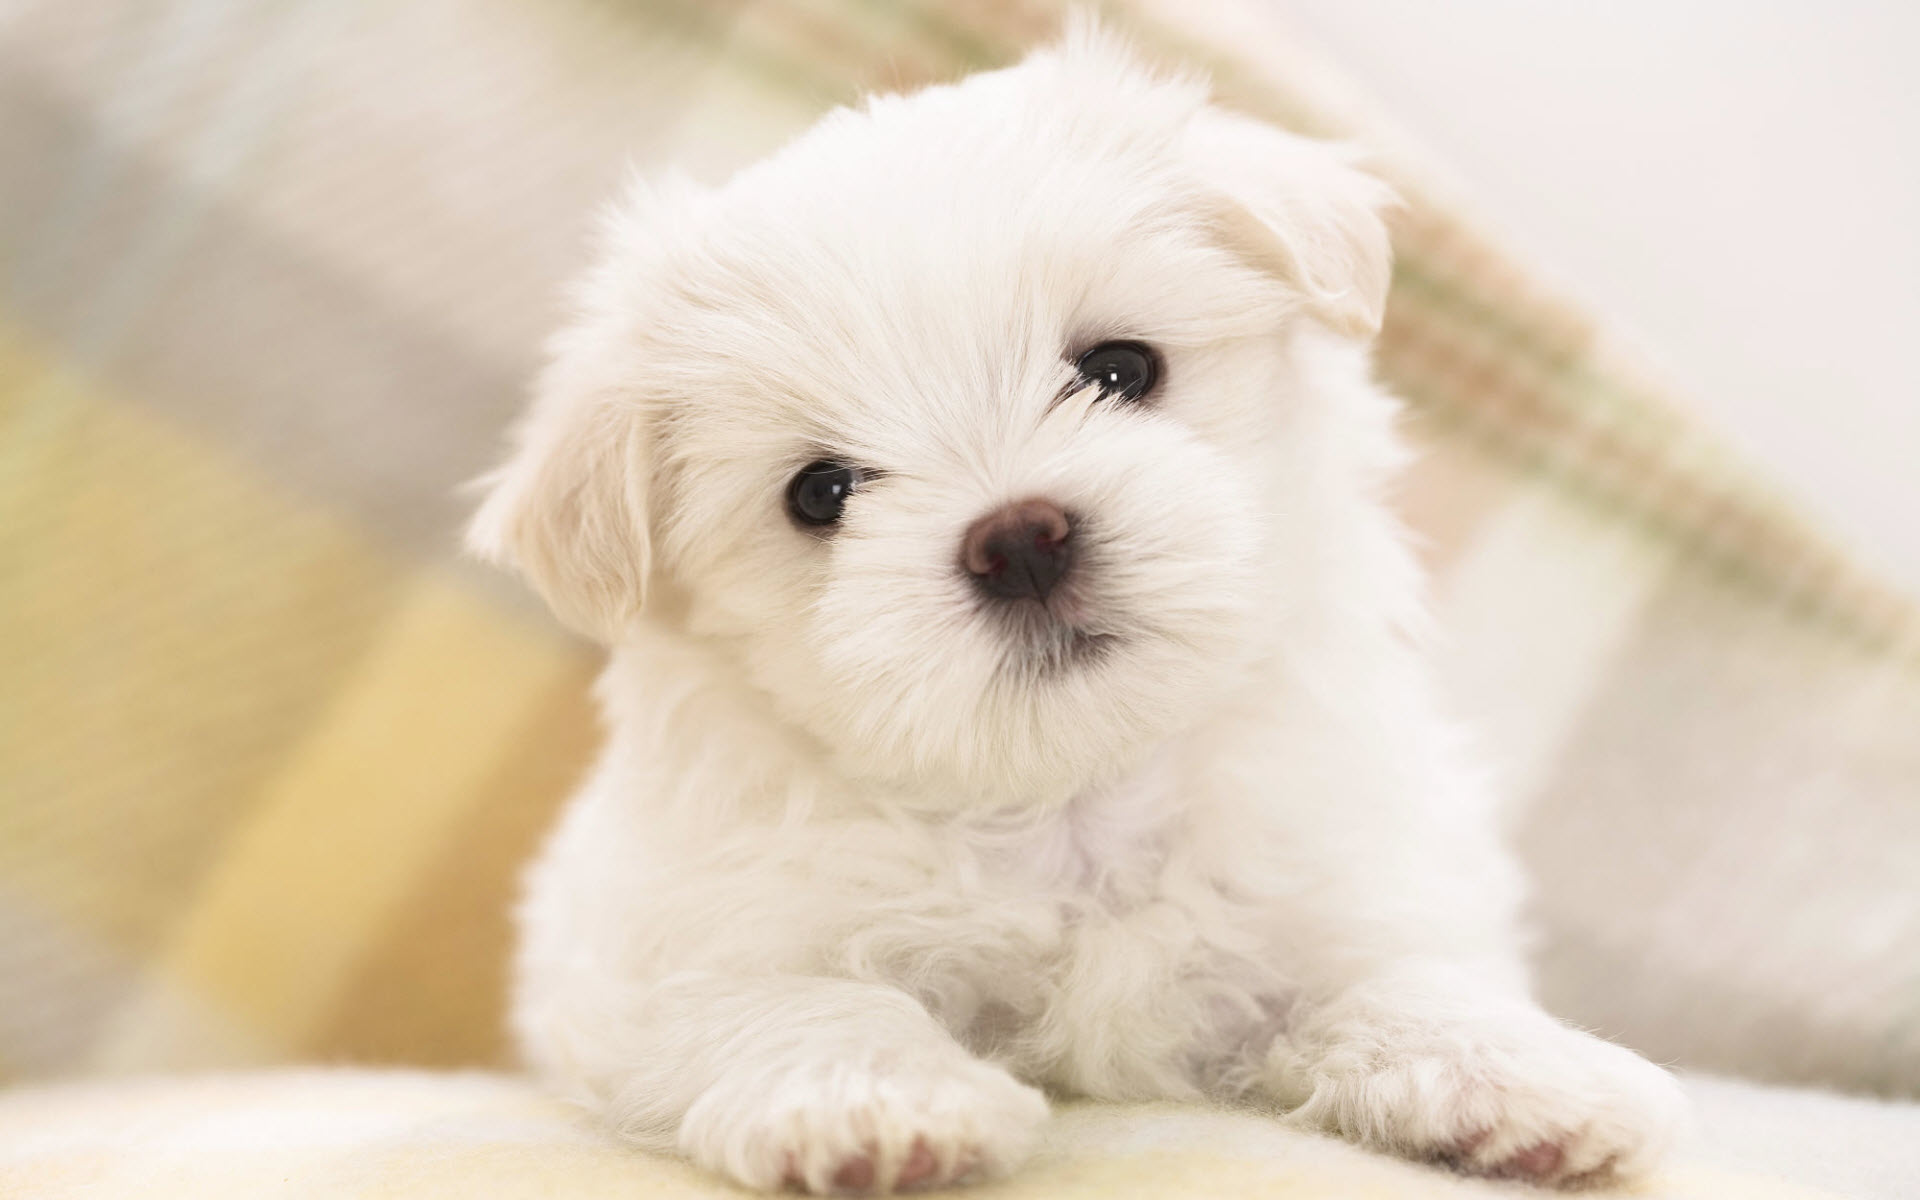 Wallpapers Puppies